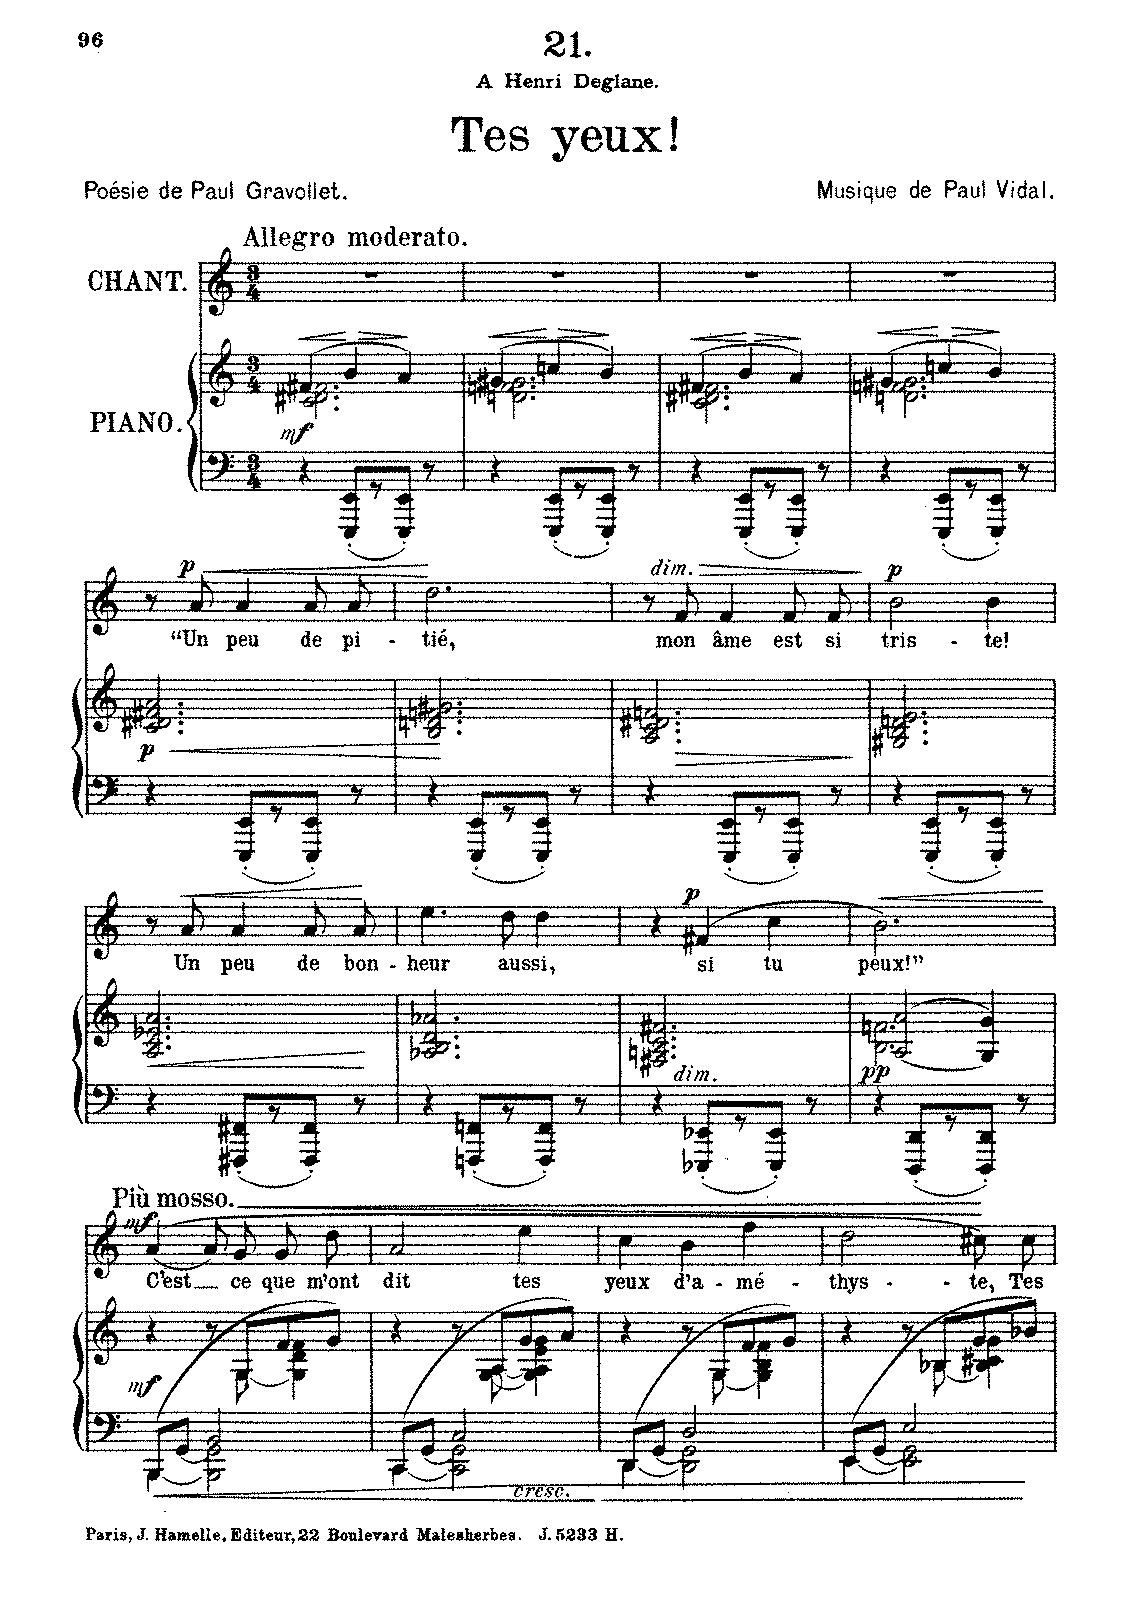 PMLP194965-Vidal - Tes yeux (voice and piano).pdf